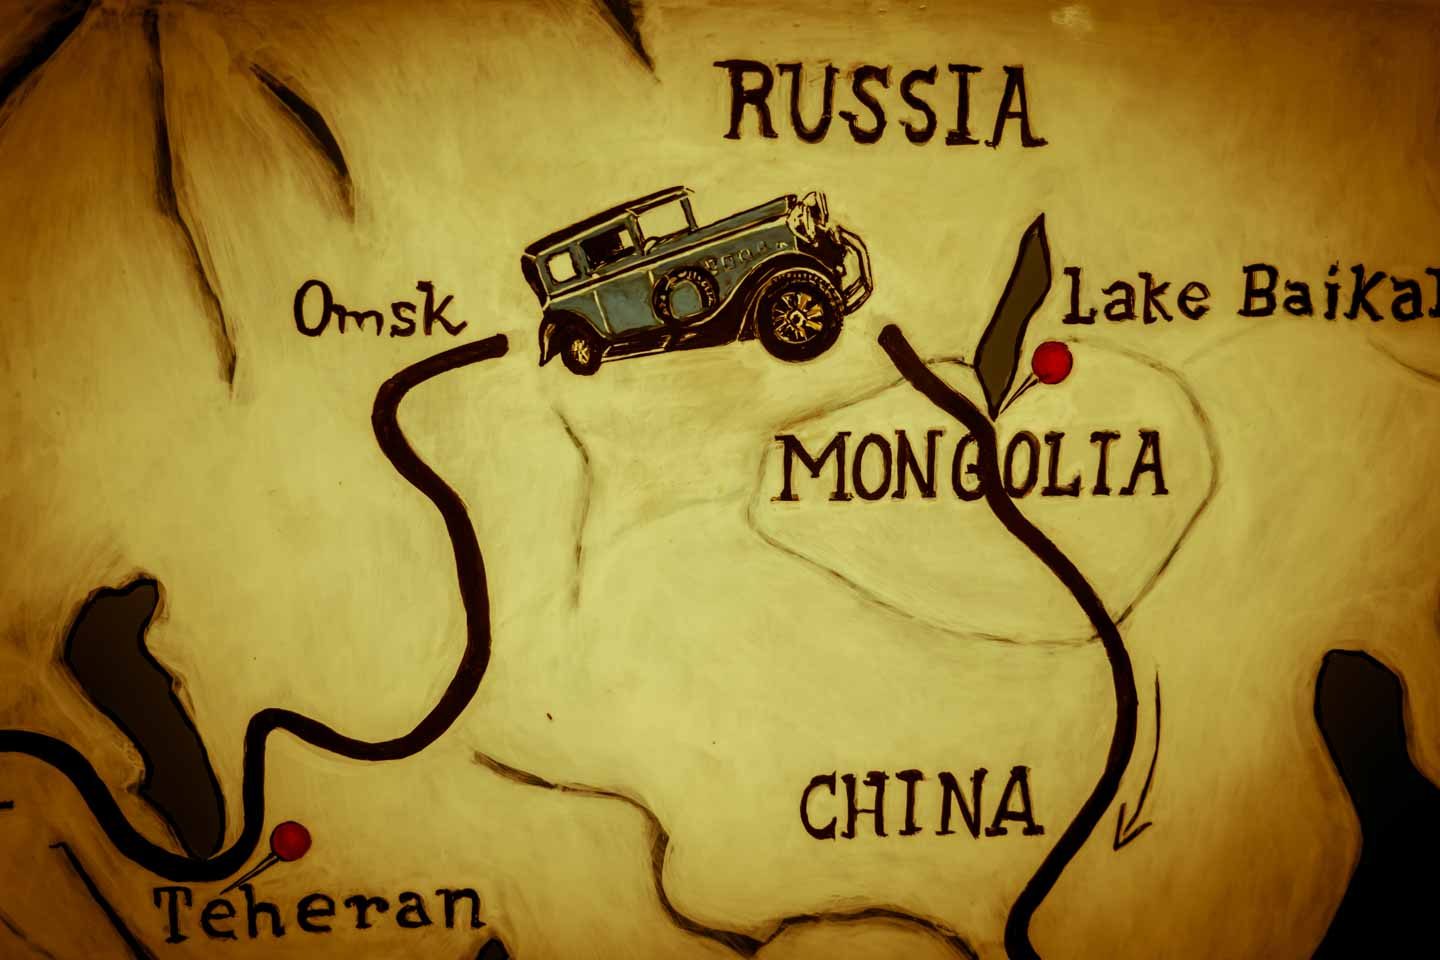 Heidi Hetzer is driving around the world map